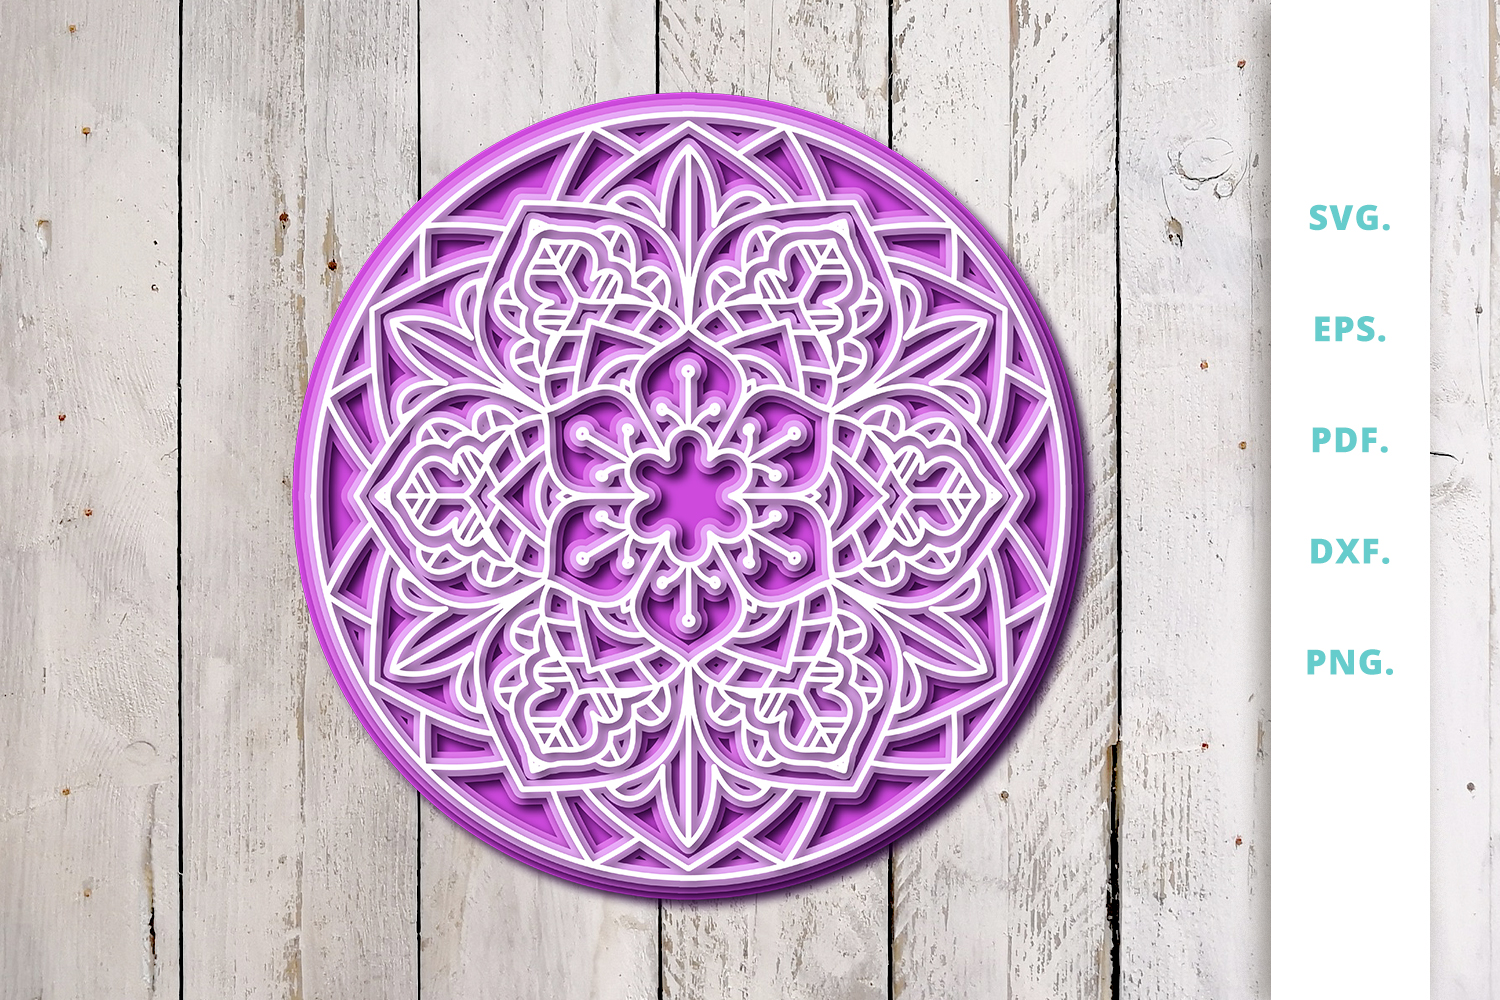 Download Free 3d Layered Mandala Graphic By Sintegra Creative Fabrica for Cricut Explore, Silhouette and other cutting machines.